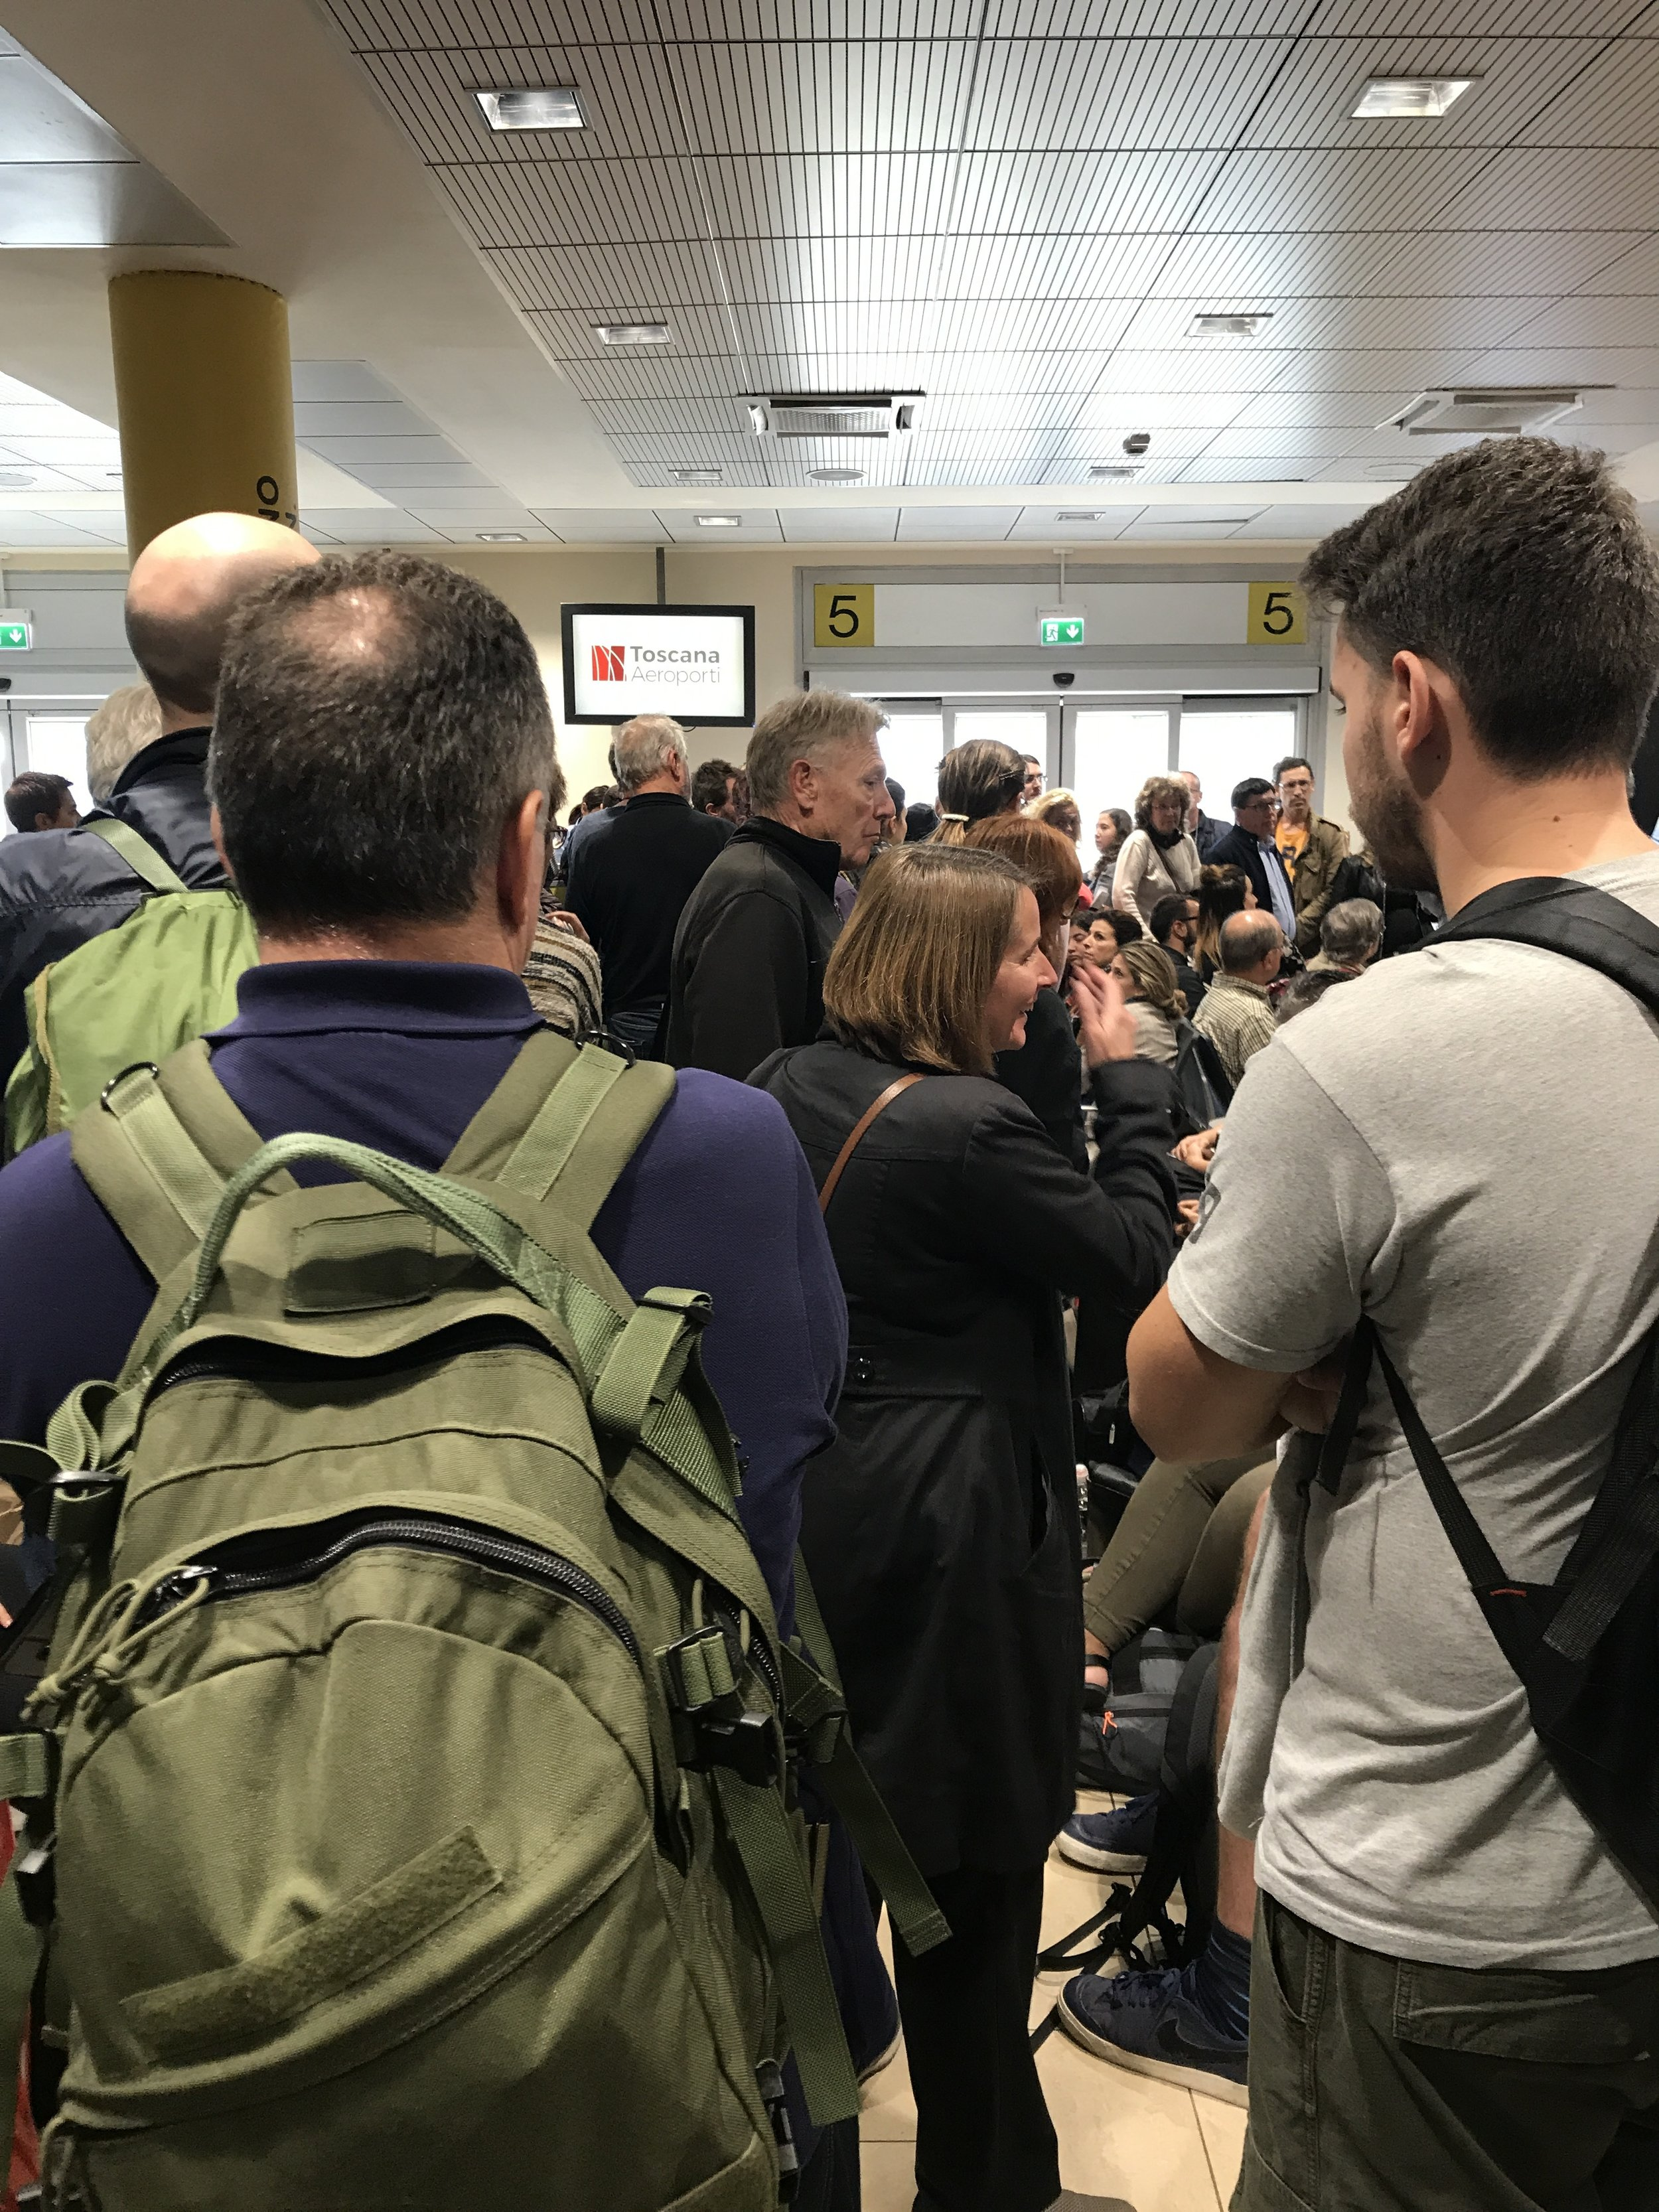 Travelers wait to learn whether their flight has been delayed or canceled at the Florence airport.